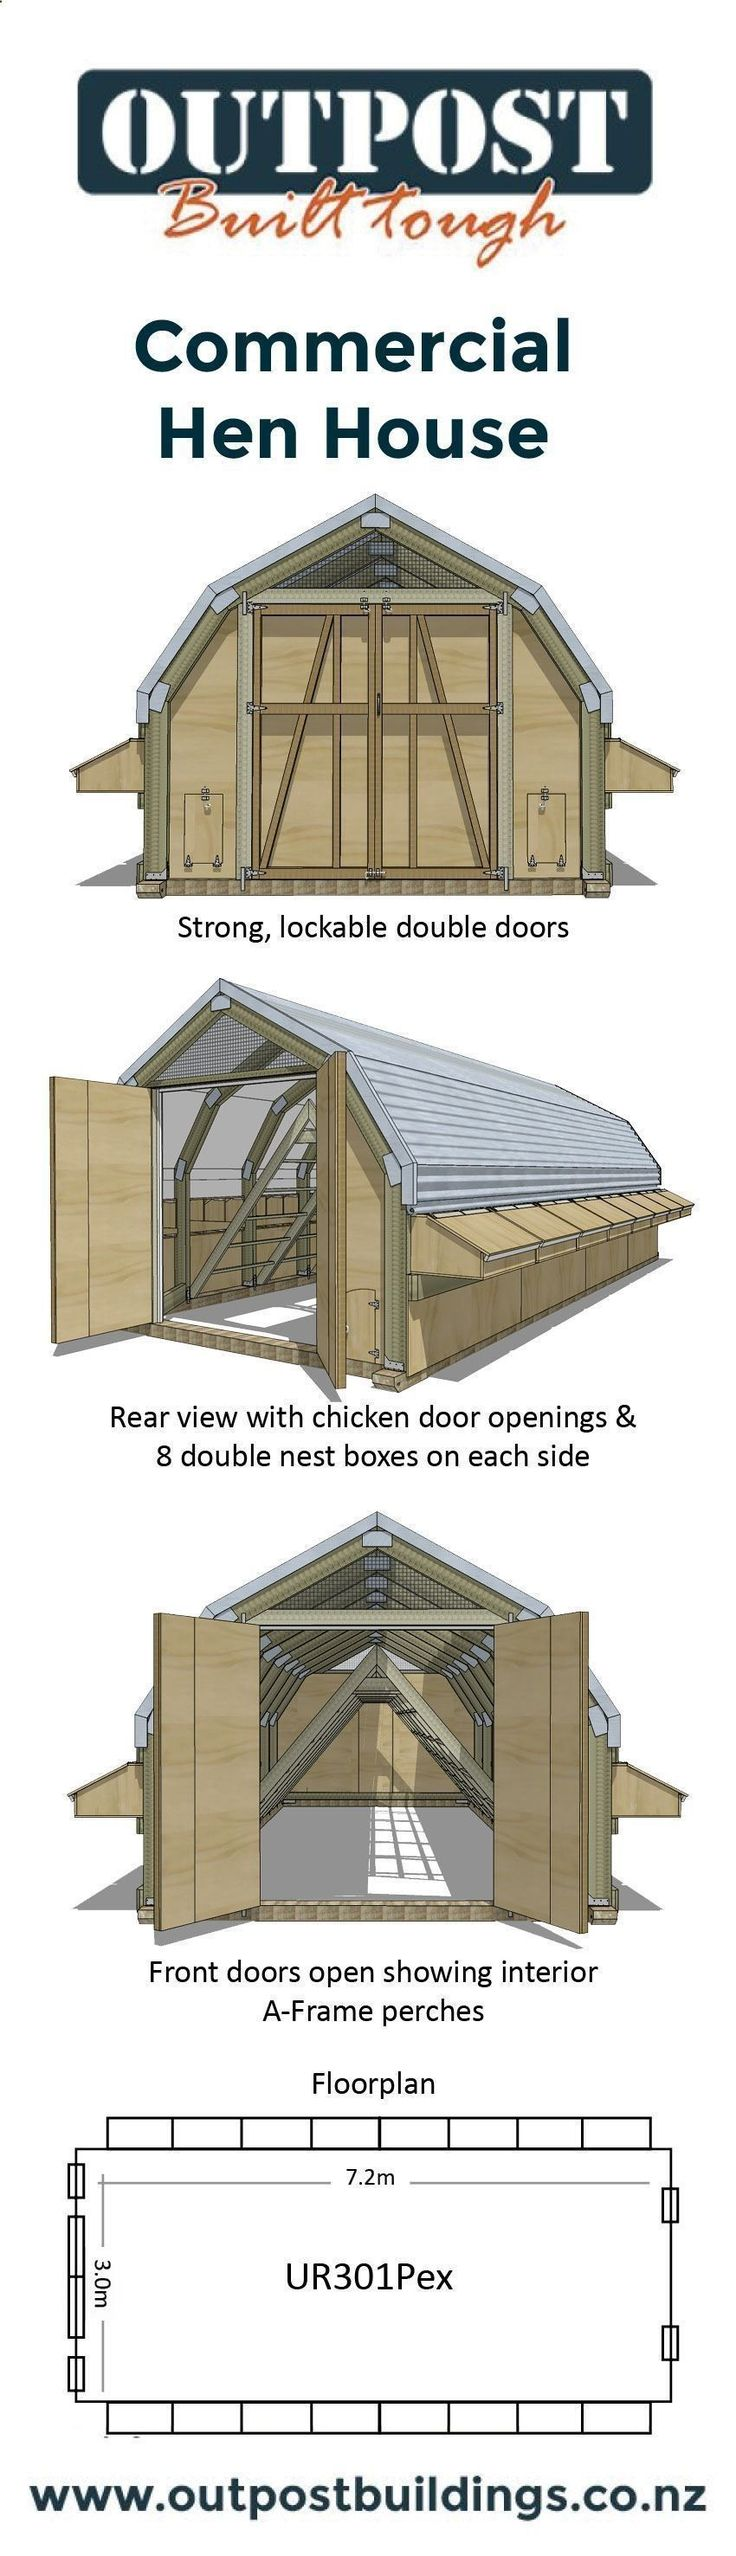 Chicken Coop - Large Chicken Coop suitable for up to 180 free ranging hens! #freerangechickens Building a chicken coop does not have to be tricky nor does it have to set you back a ton of scratch.